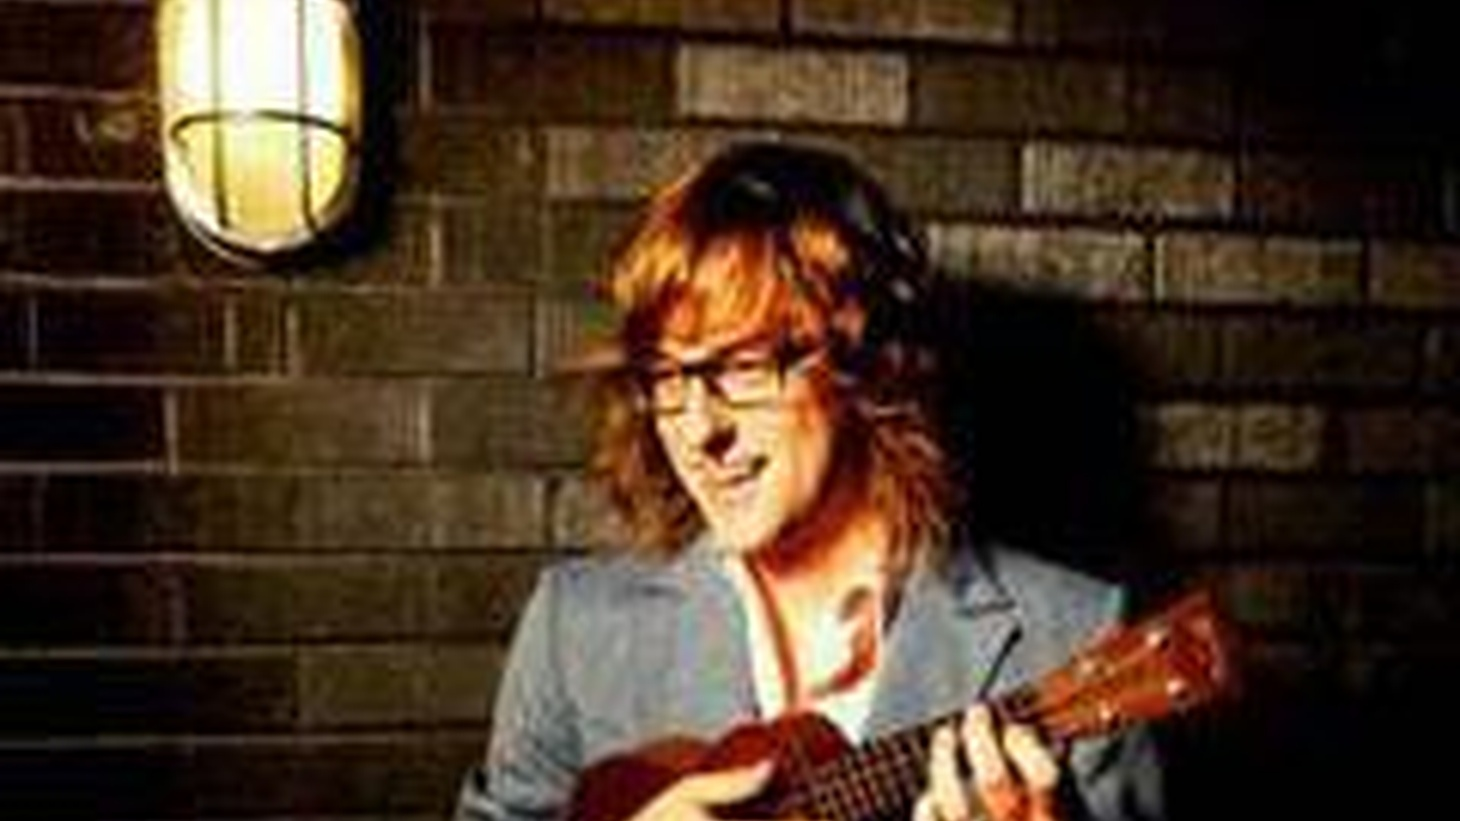 """My Morning Jacket guitarist Carl Broemel's sturdy chops are based on rigorous classical guitar training and a love of country music. He launches his solo career with All Birds Say, a set of modern folk songs including Today's Top Tune, """"In The Garden."""""""